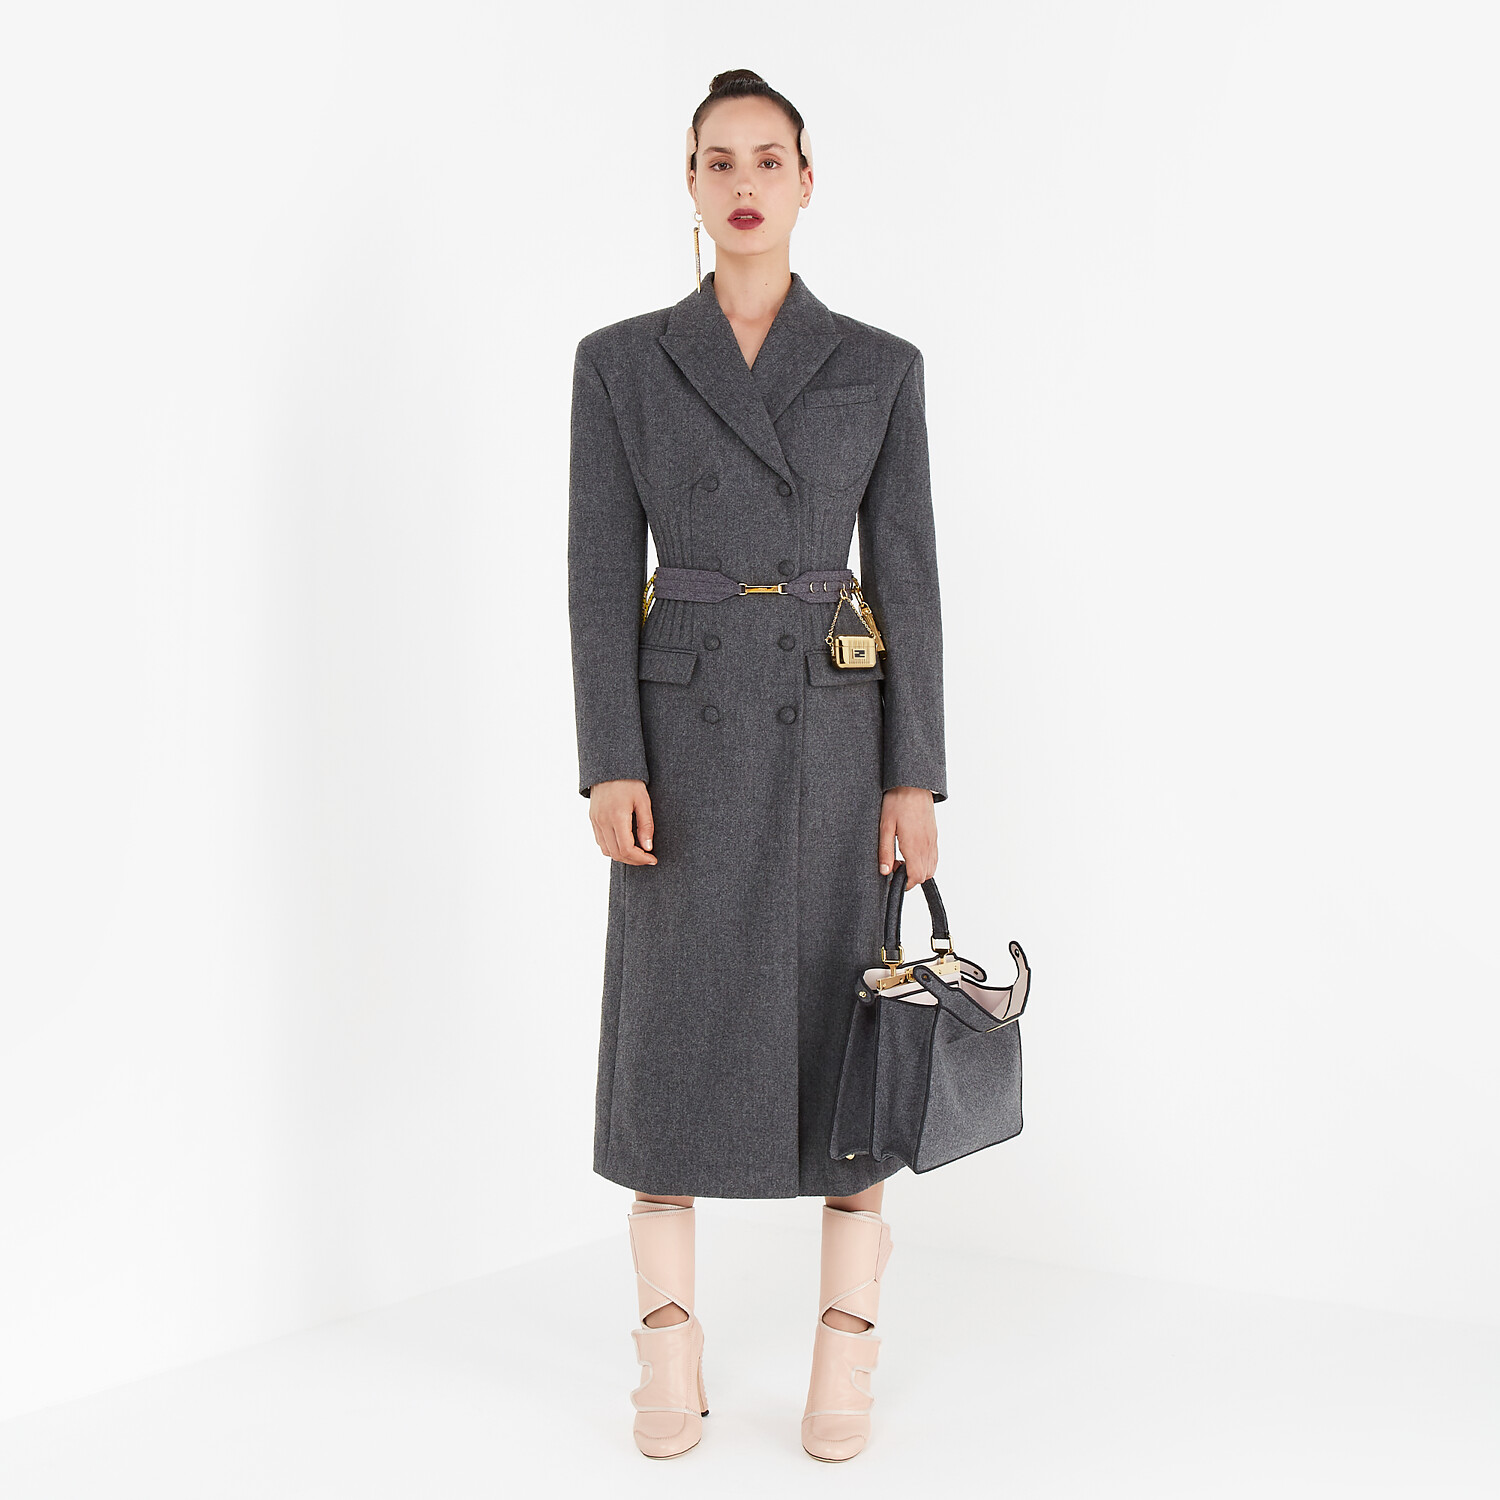 FENDI COAT - Grey cashmere coat - view 4 detail